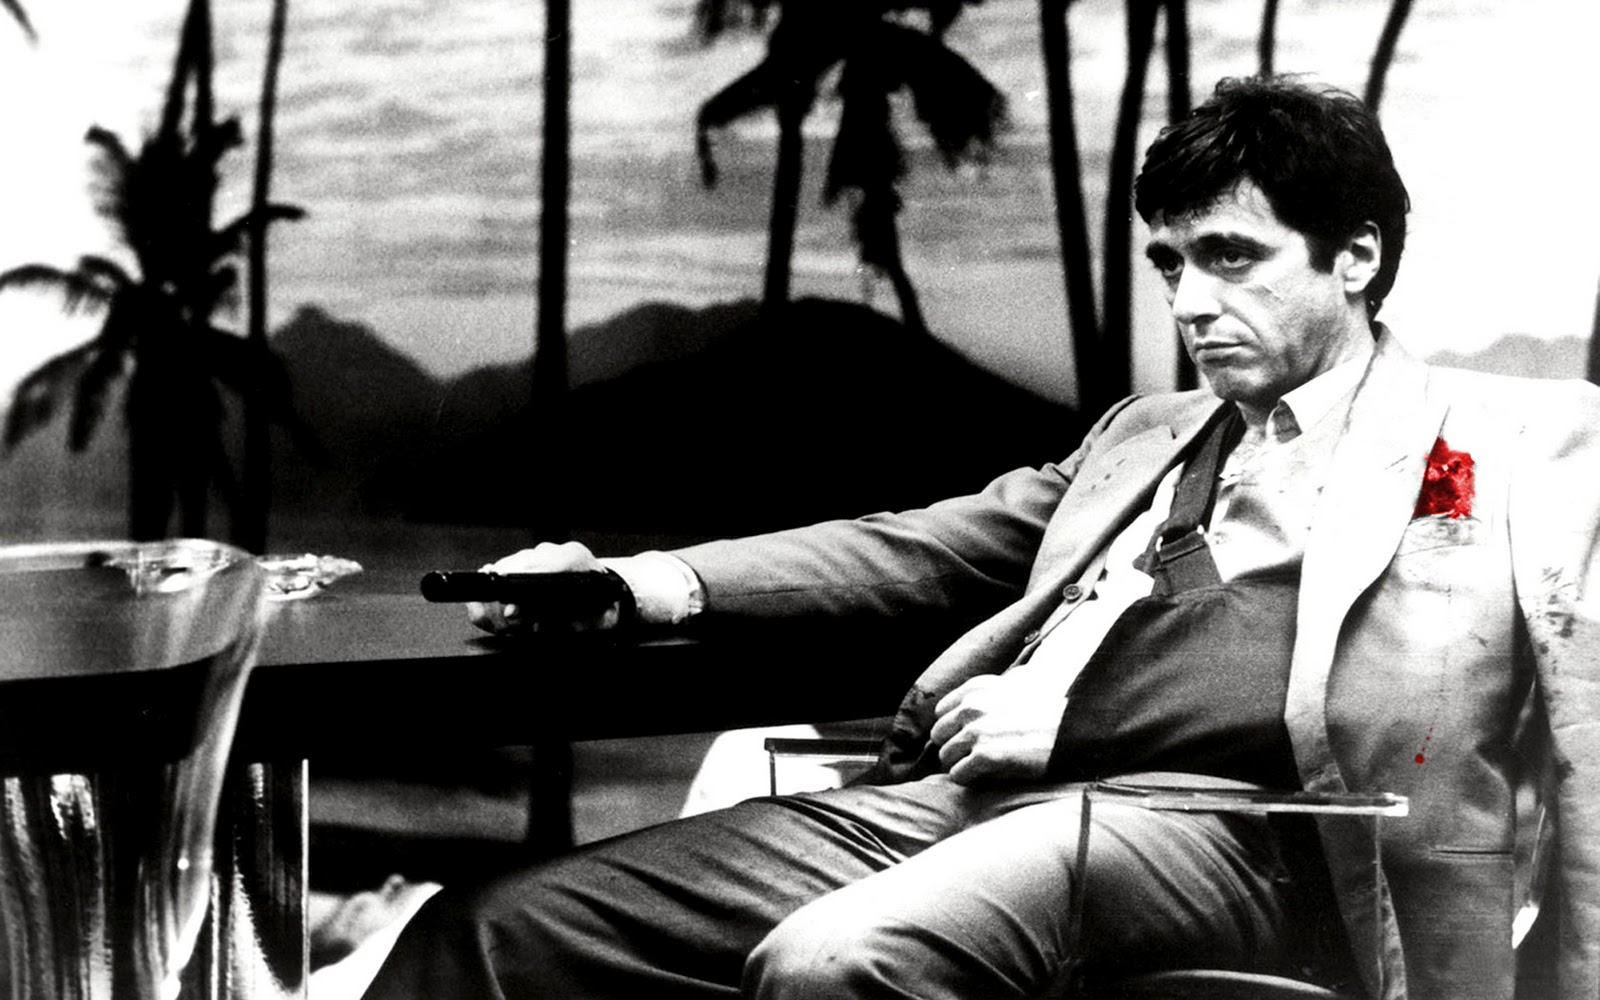 Tony_Montaa_Al_Pacino_Scarface_HD_Wallpaper_VvallpaperNet